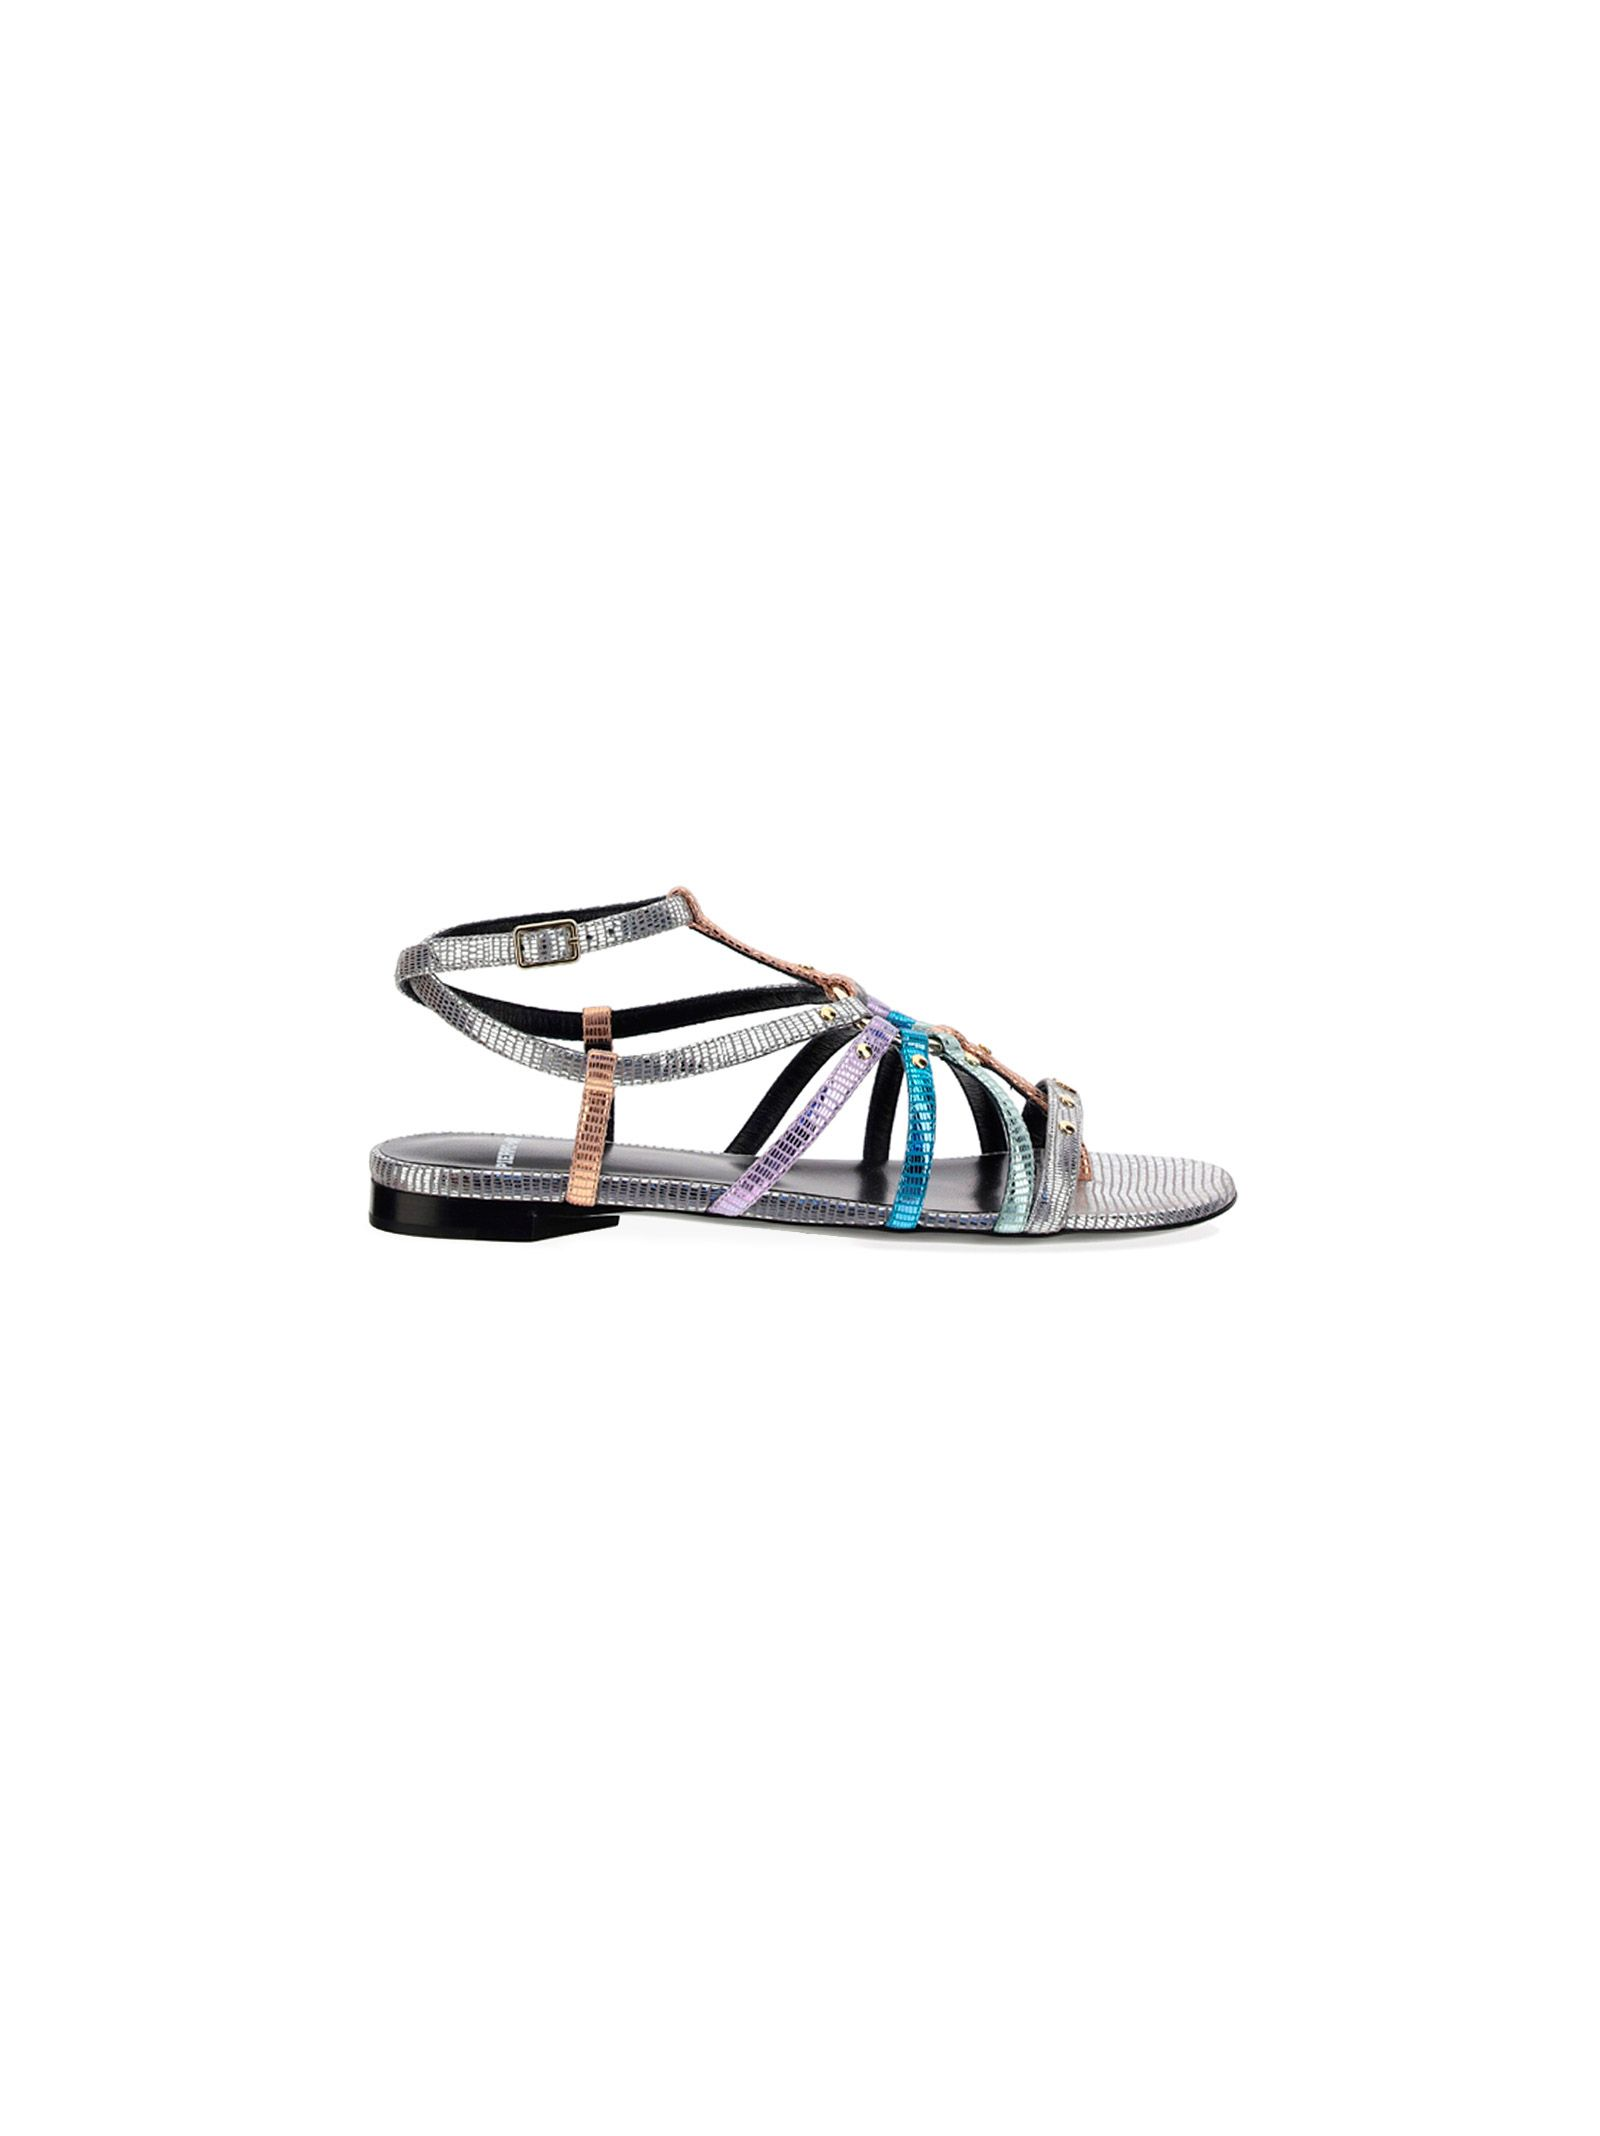 Pierre Hardy PIERRE HARDY WOMEN'S VD07SILVER SILVER OTHER MATERIALS SANDALS